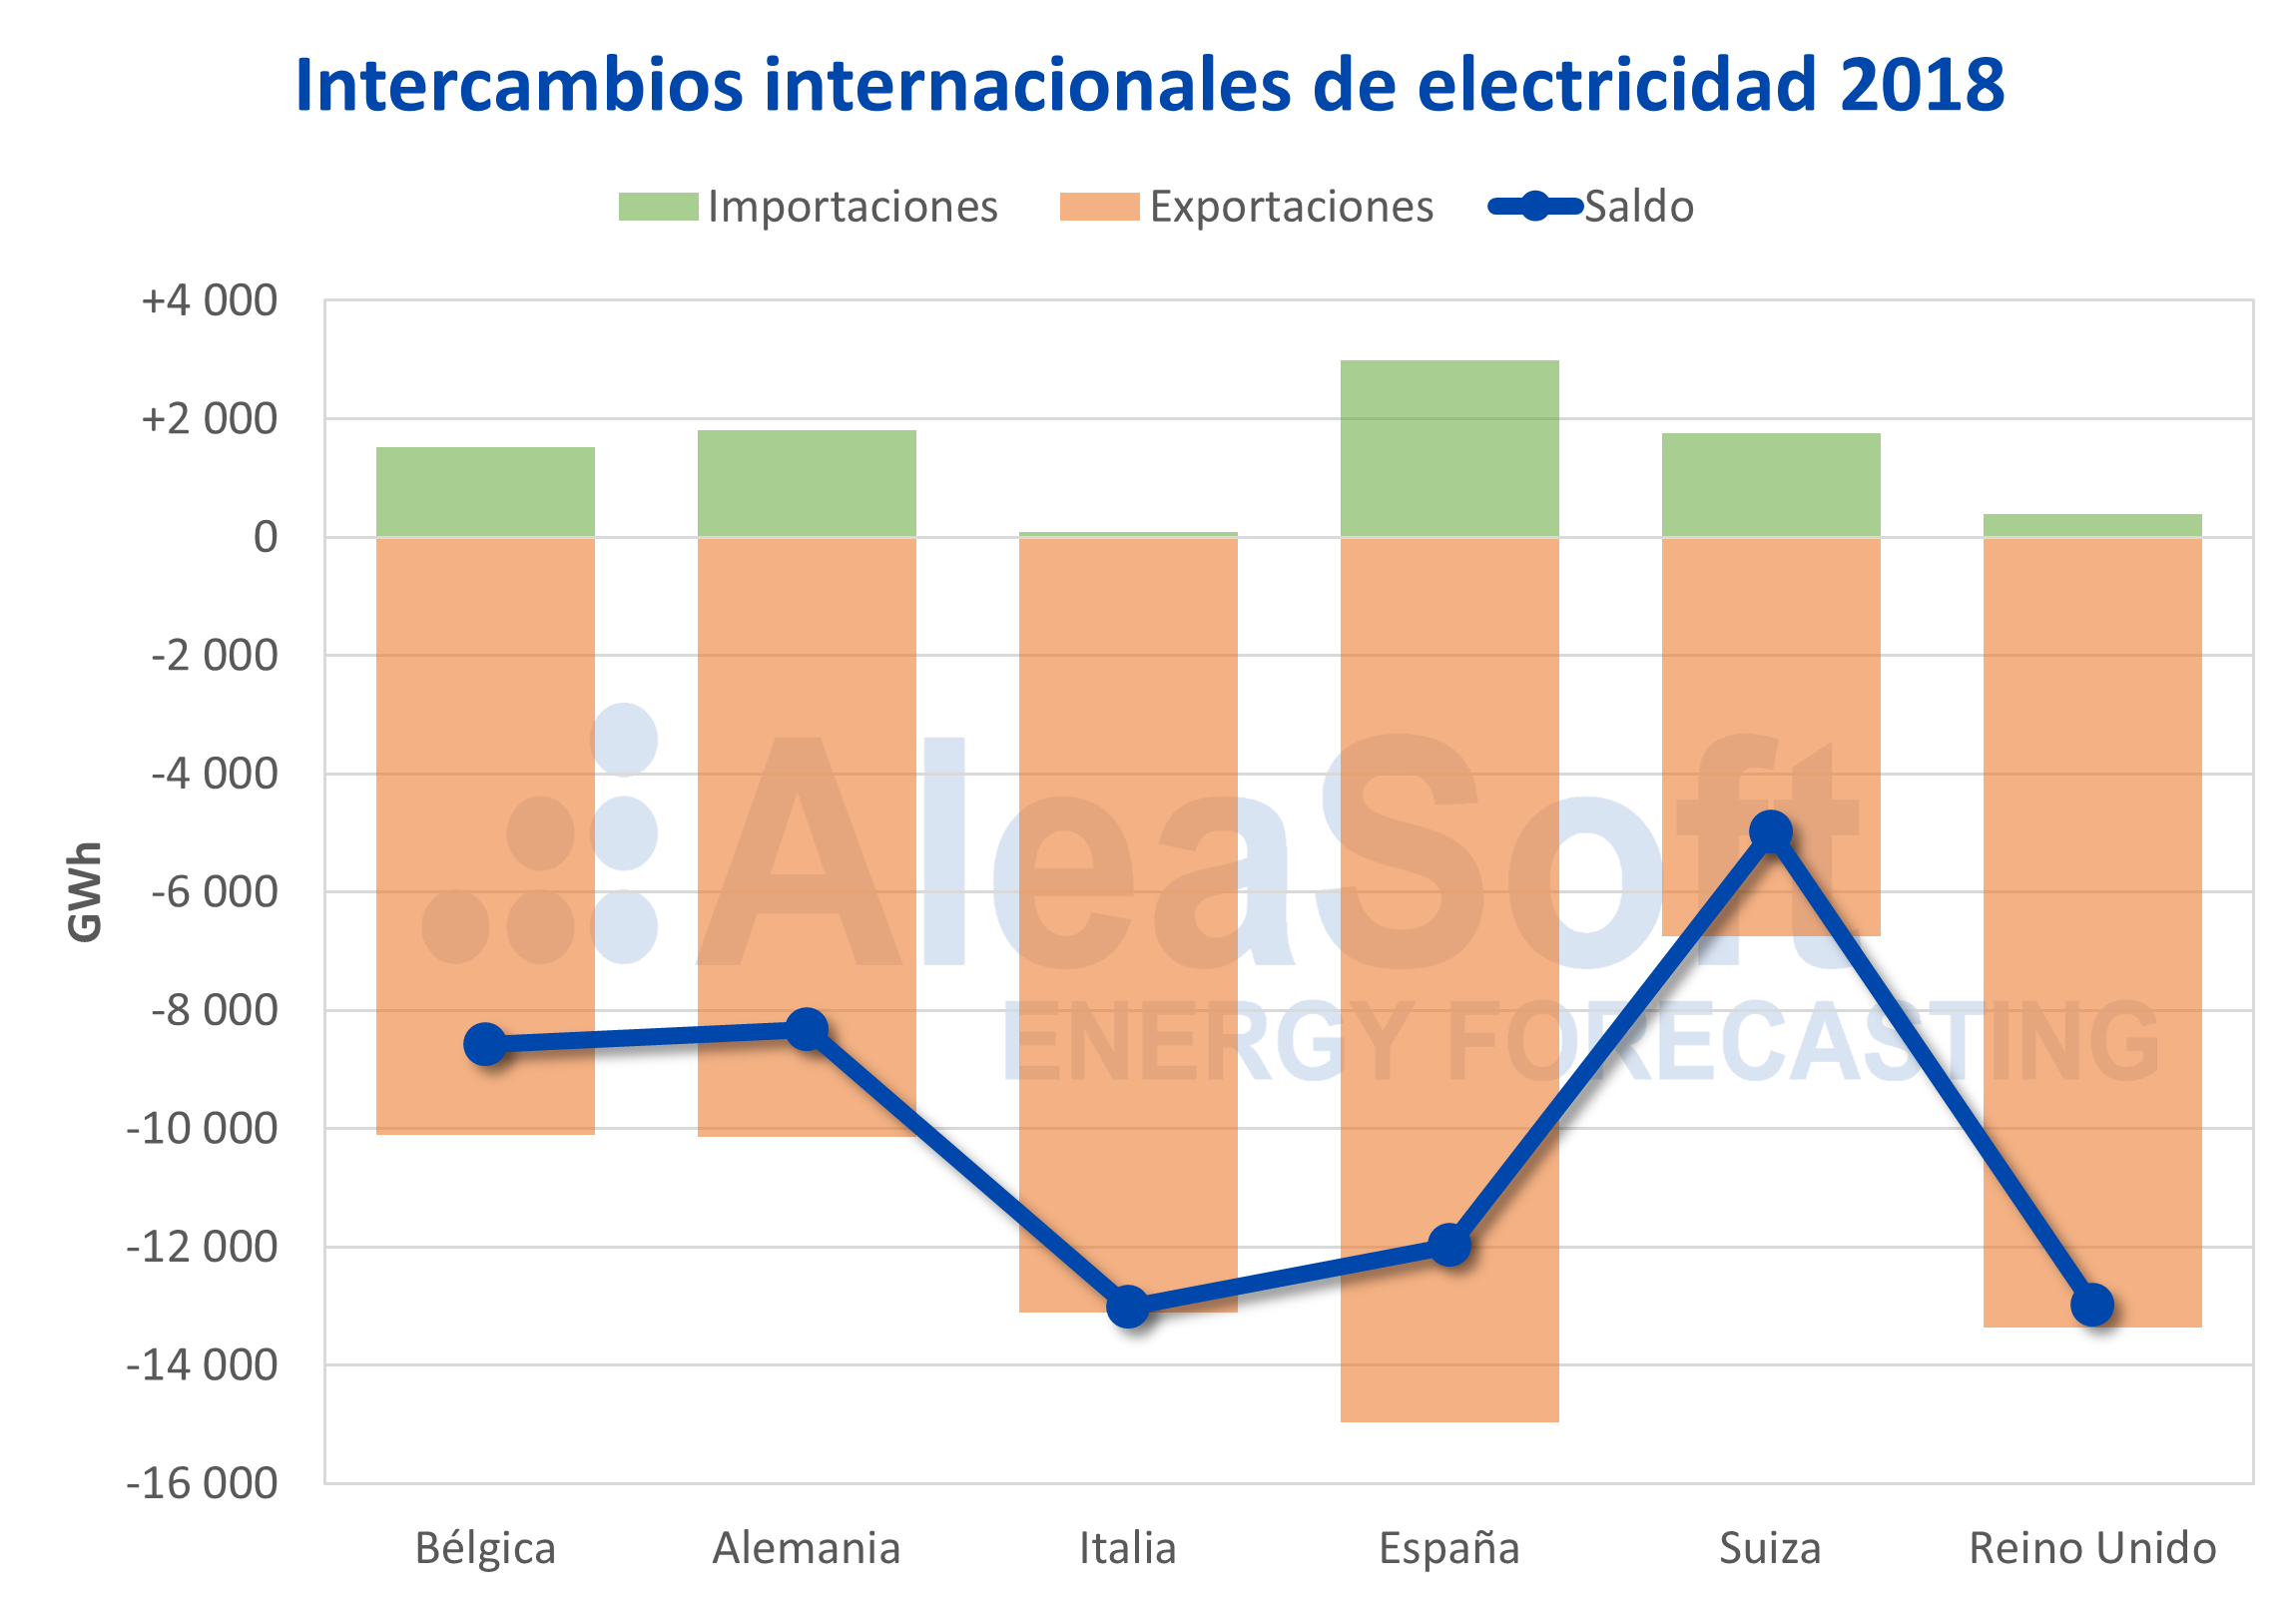 AleaSoft - Francia intercambios internacionales electricidad 2018